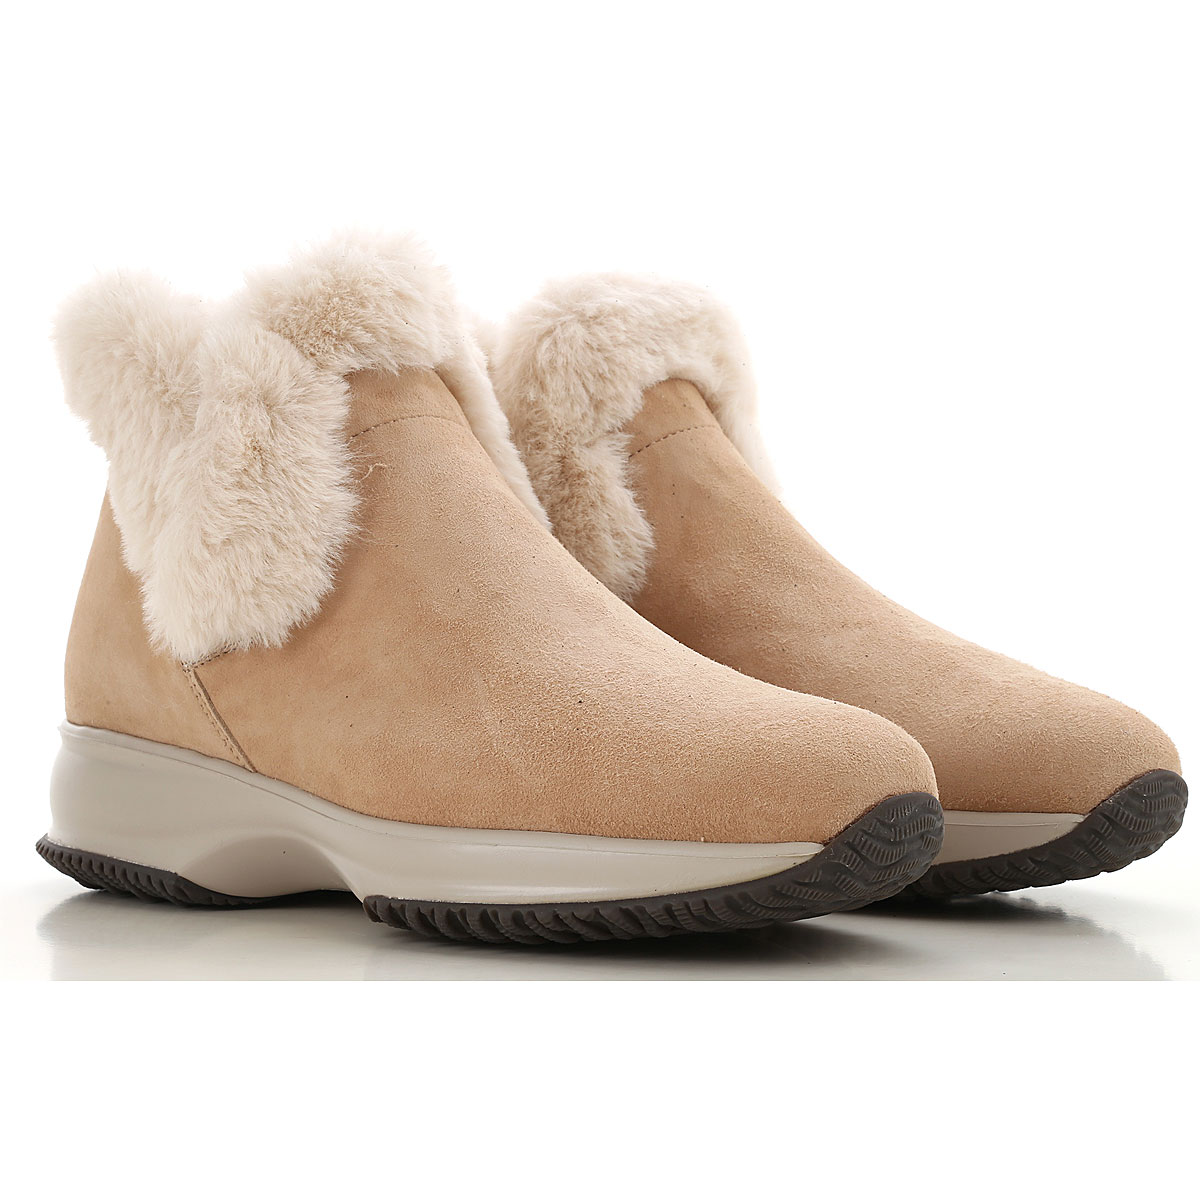 Hogan Boots for Women, Booties, Beige, suede, 2019, 10 5 5.5 6 6.5 7 8 9